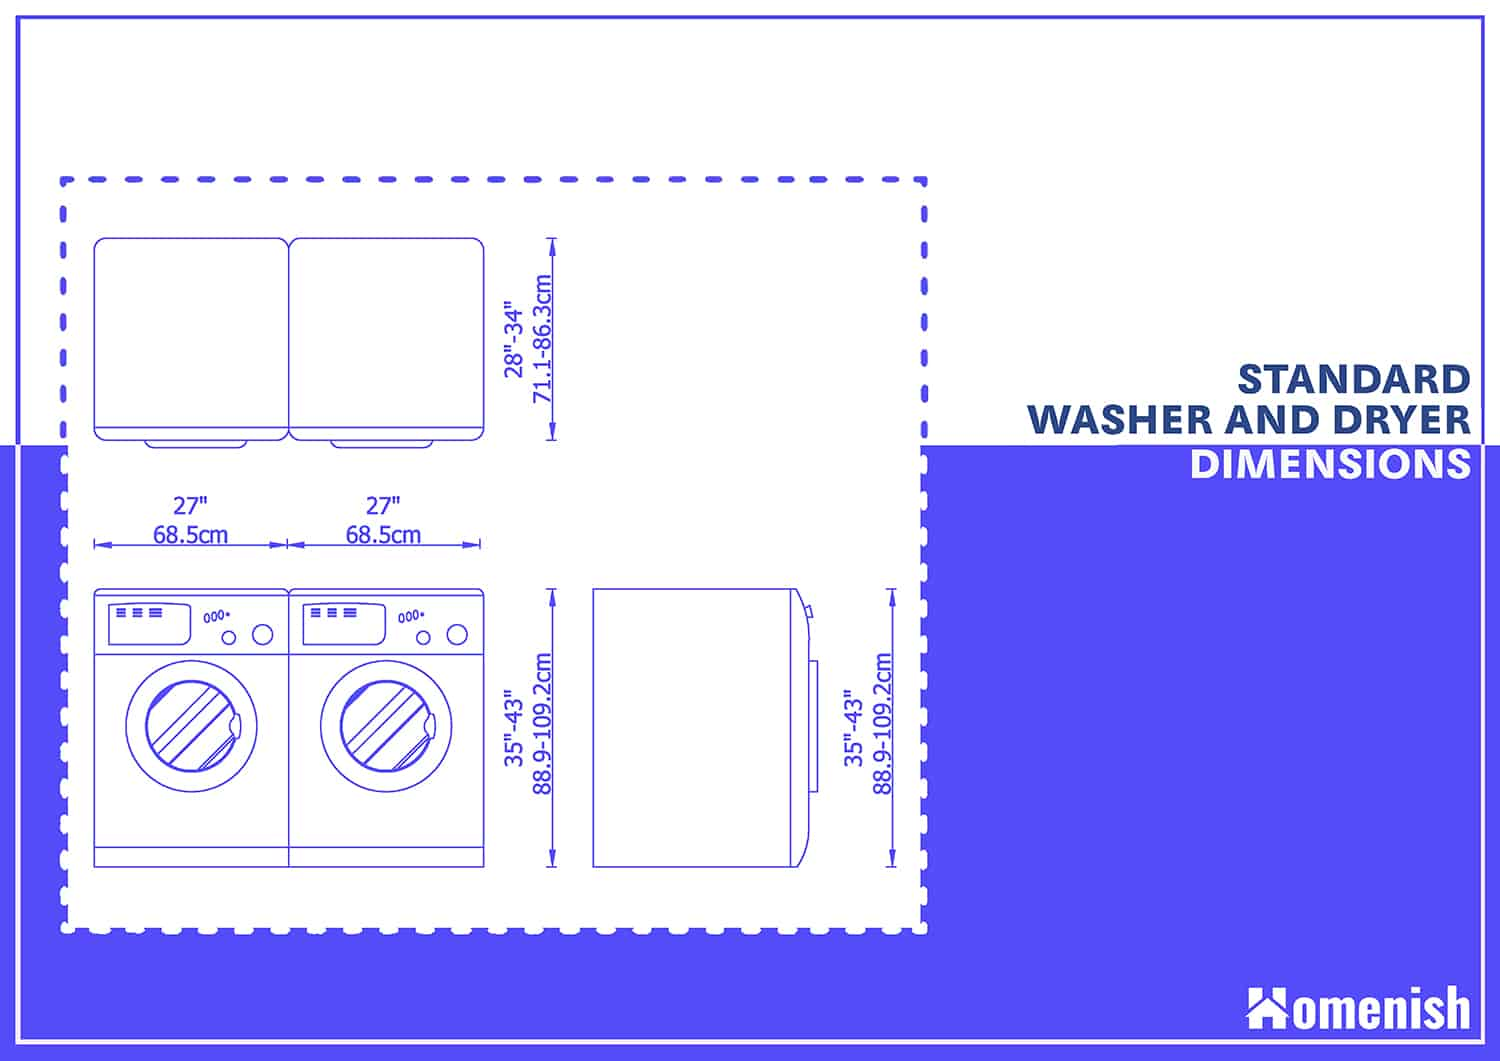 Standard Washer and Dryer Dimensions